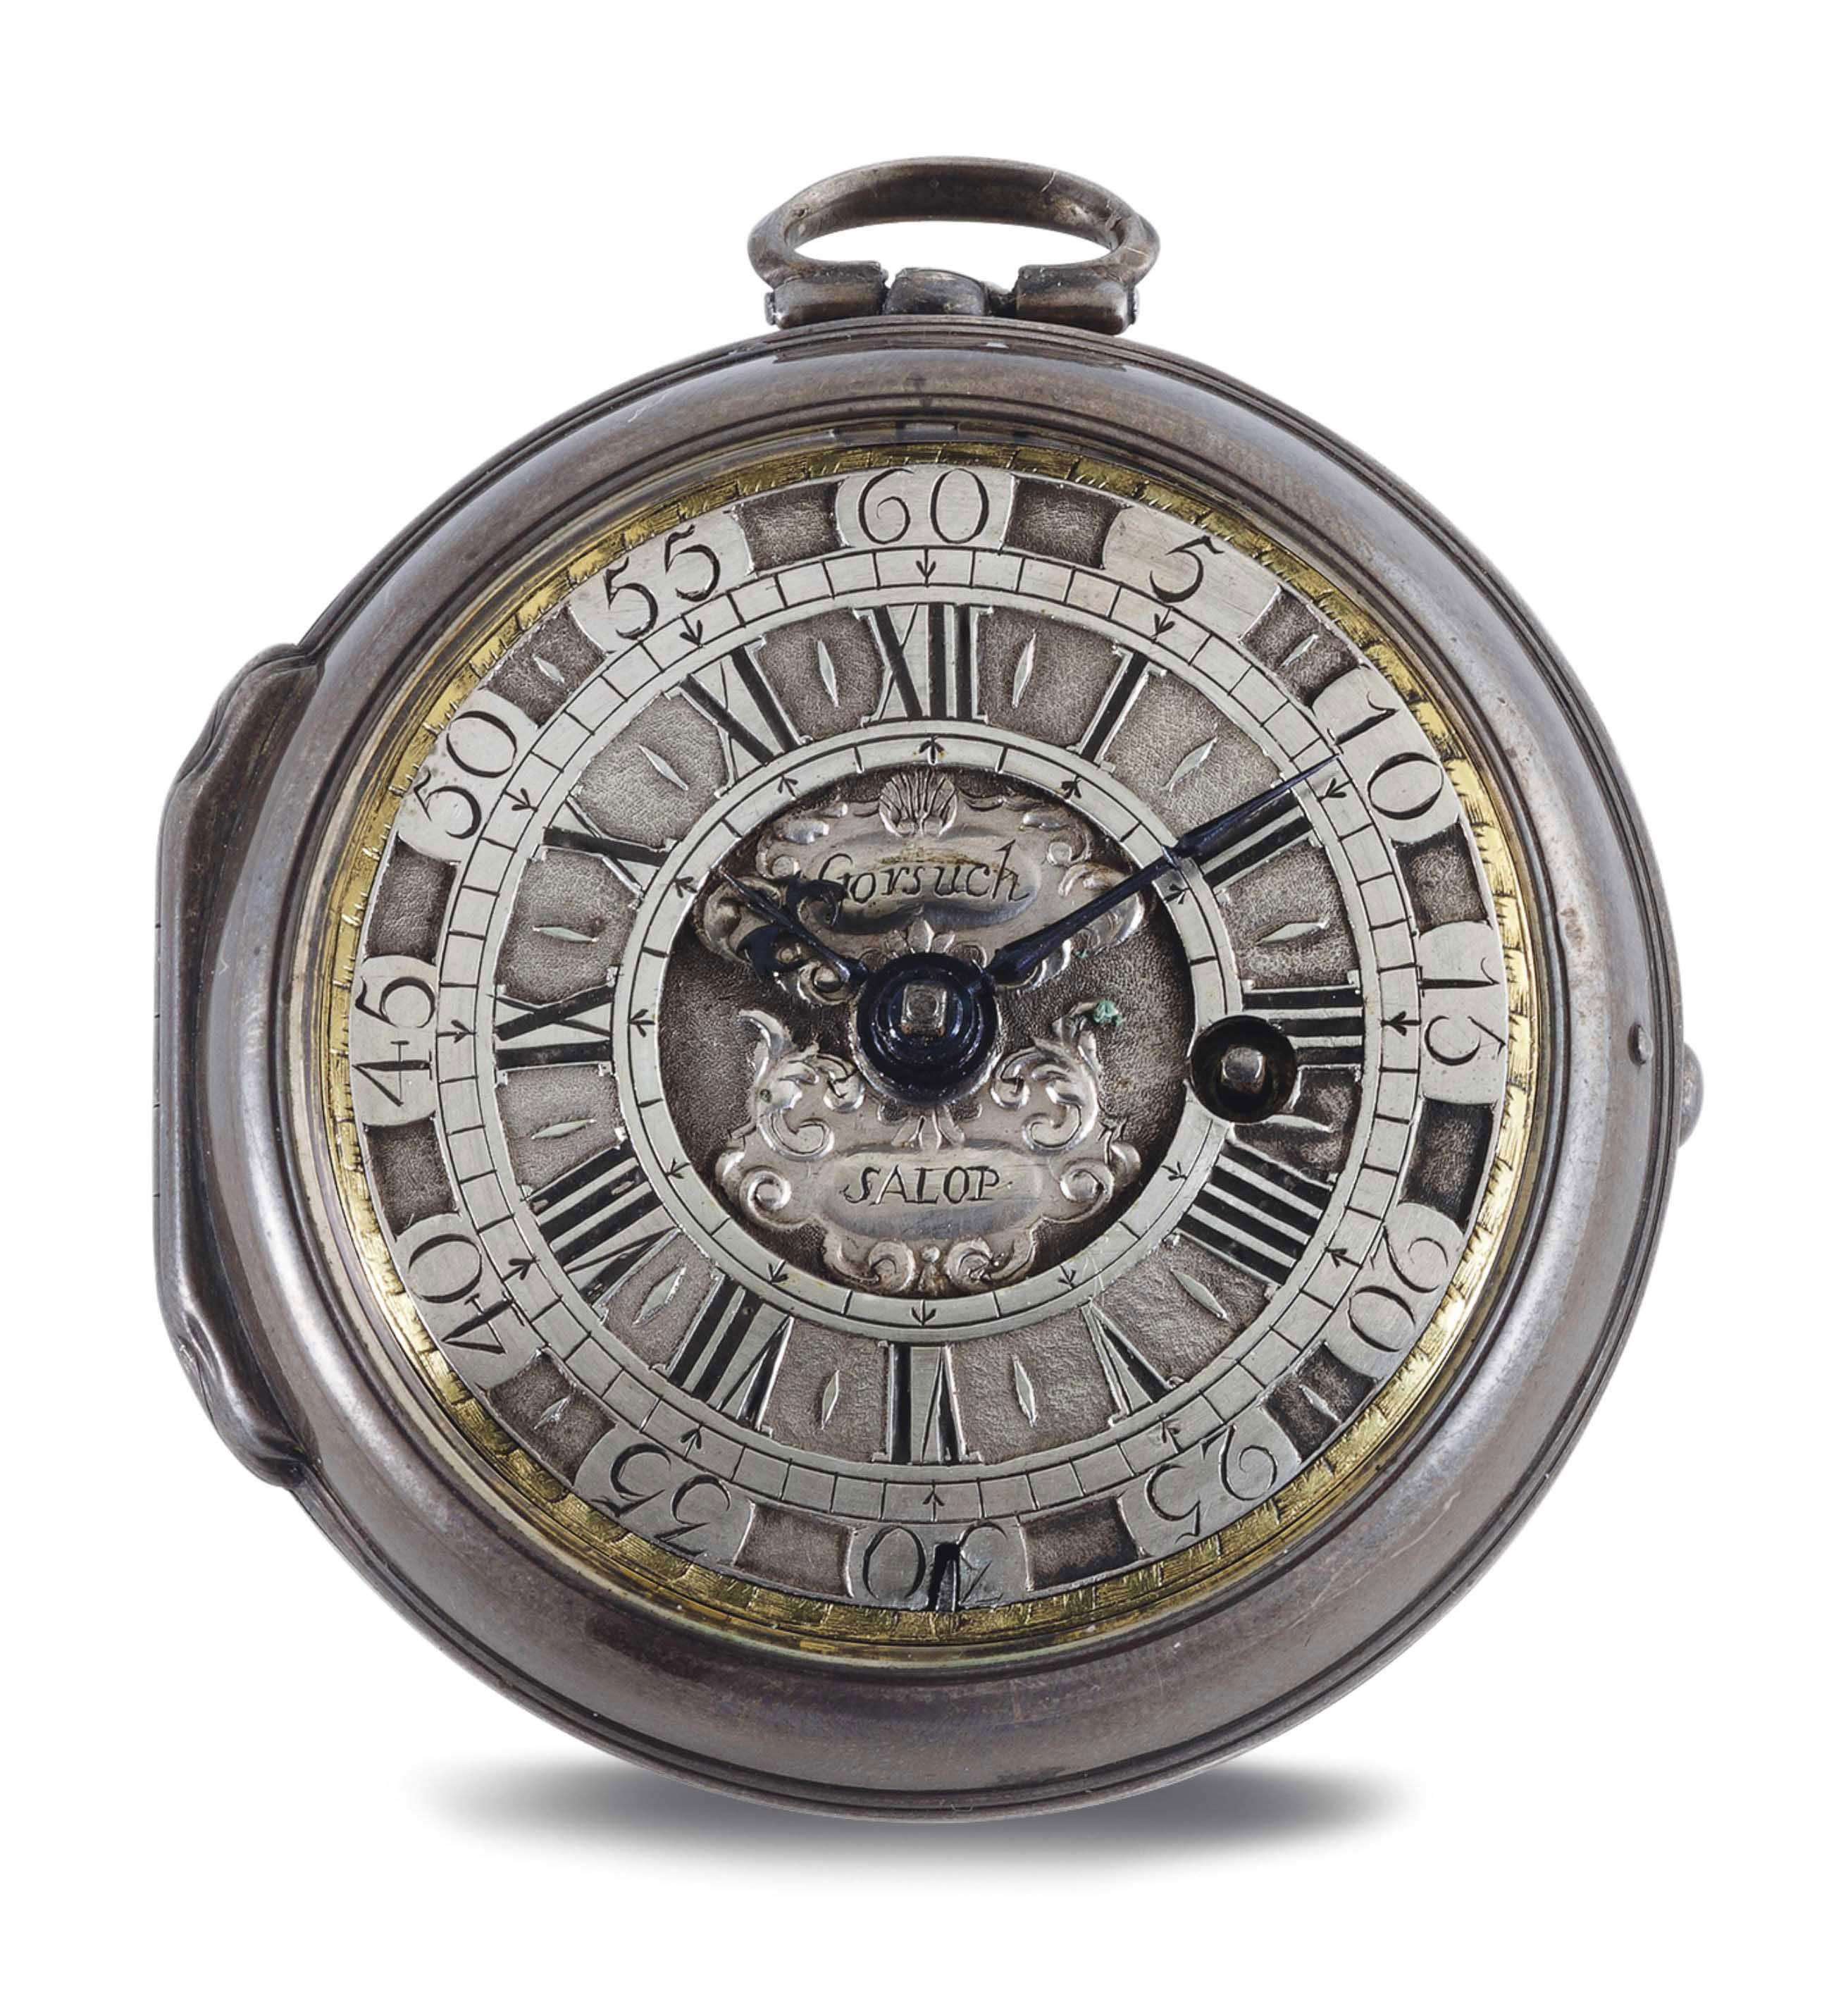 THOMAS GORSUCH. A SILVER OPENFACE VERGE POCKET WATCH WITH MOCK PENDULUM